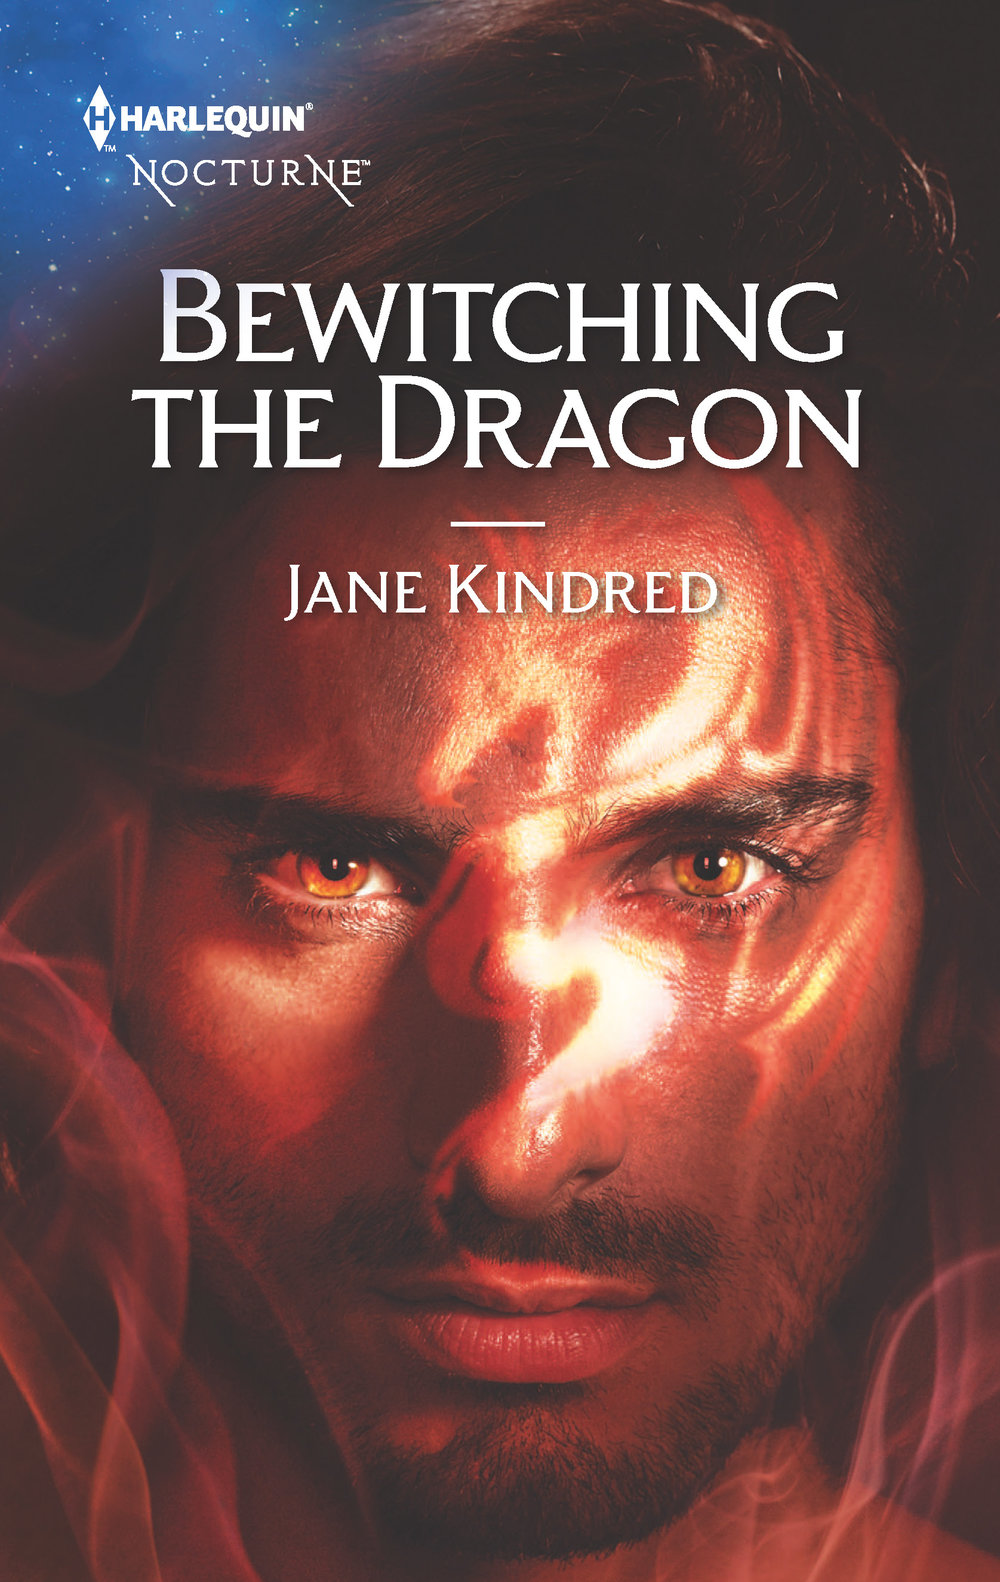 BewitchingtheDragon-cover.jpg